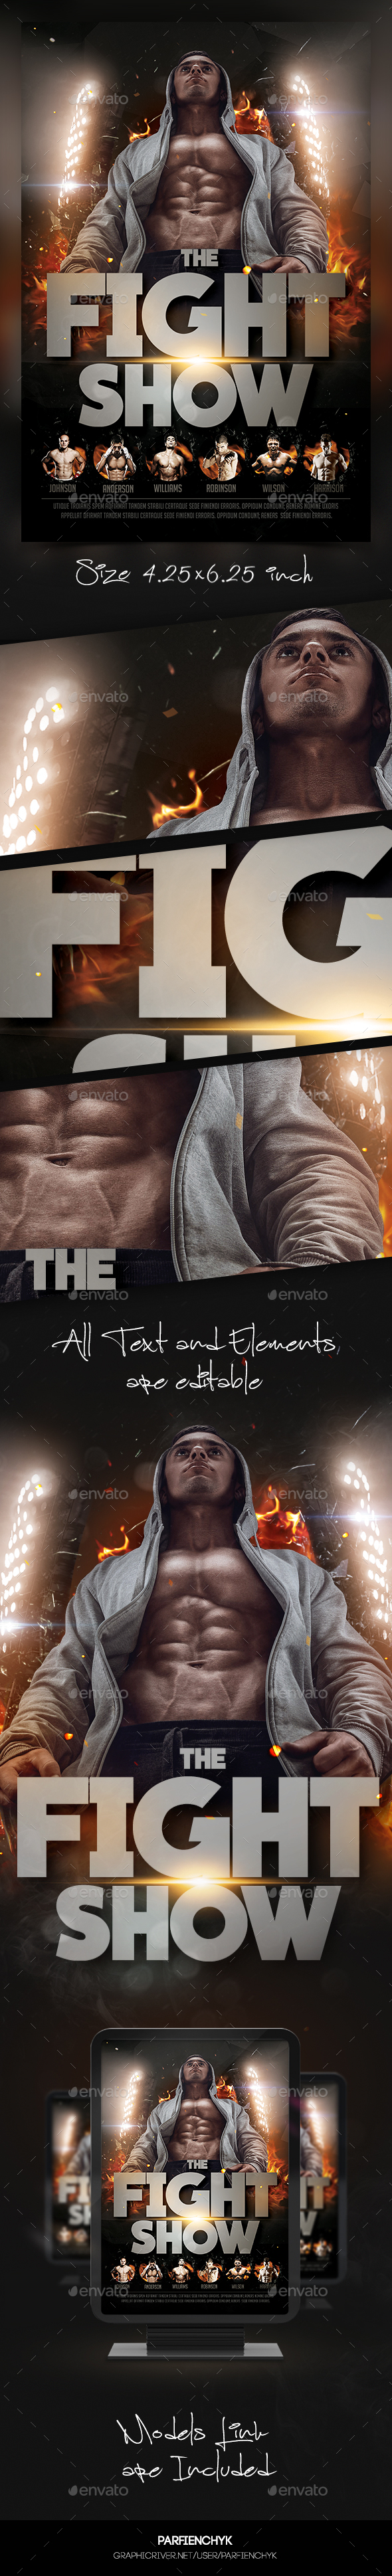 Fight Show Flyer Template - Sports Events